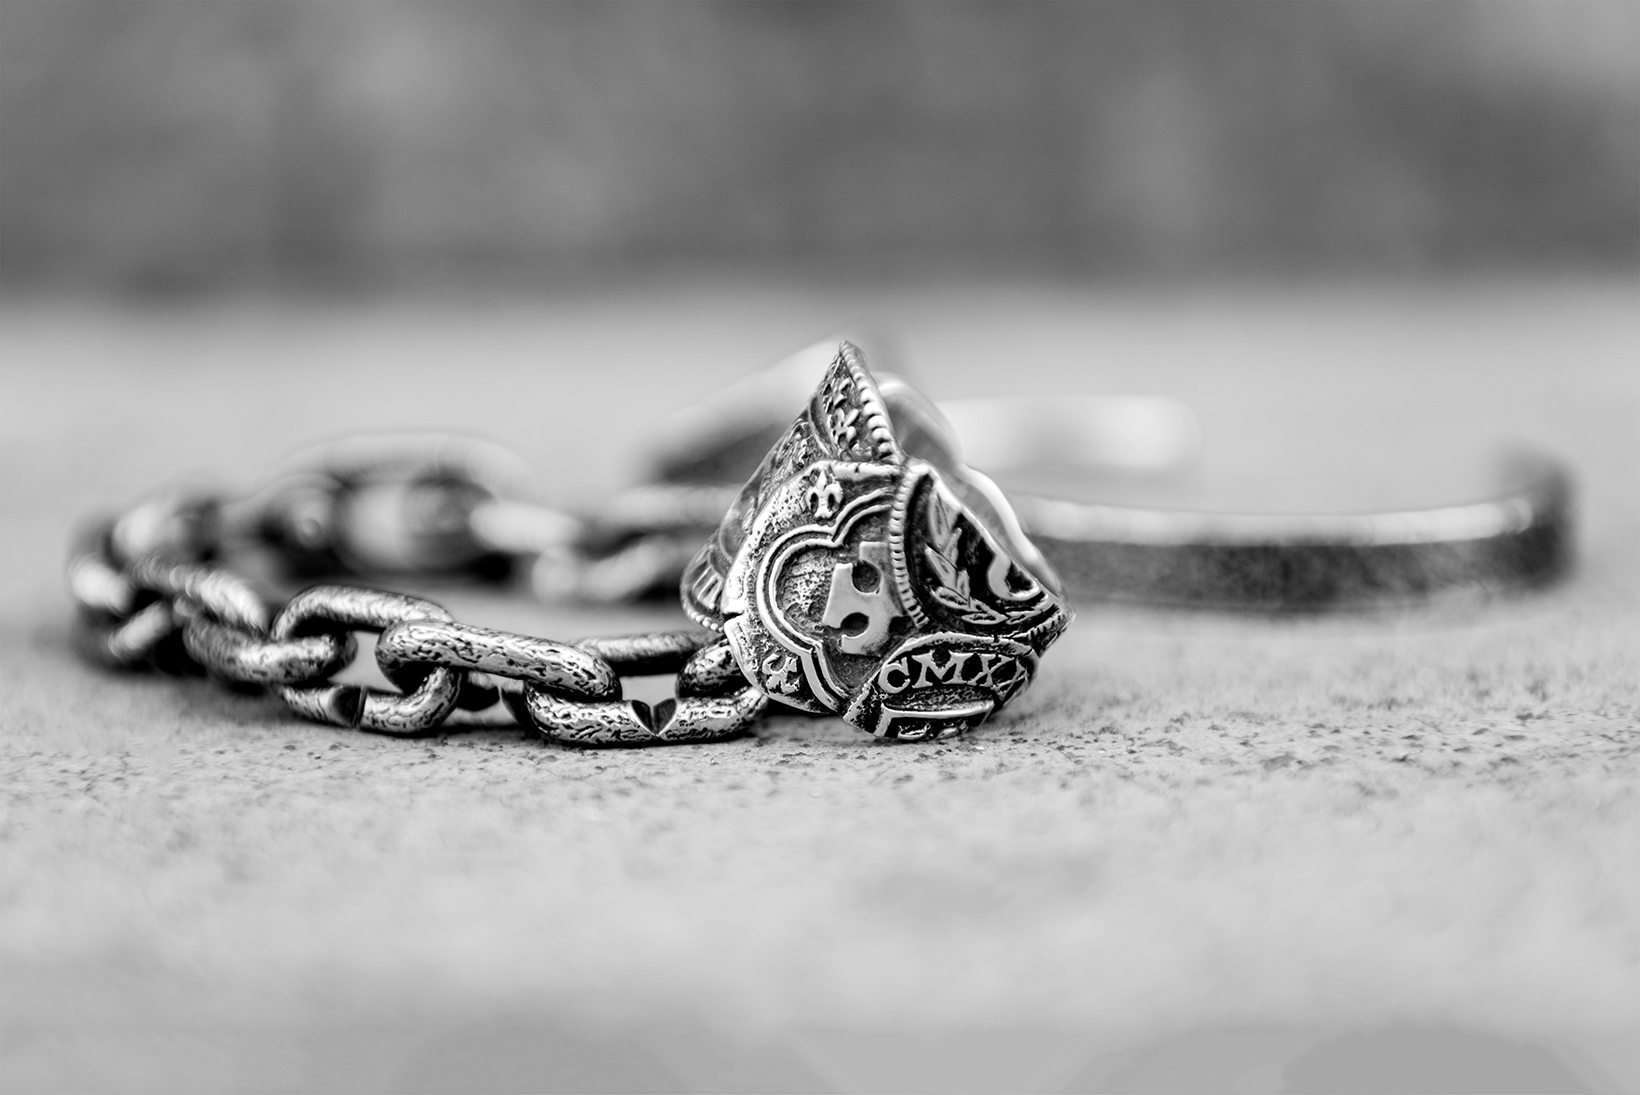 aeb1d125e520 NYC-based luxury jewelry brand David Yurman unveils its Shipwreck  Collection for Fall Winter 2017. Taking inspiration from British and  Spanish merchant ...